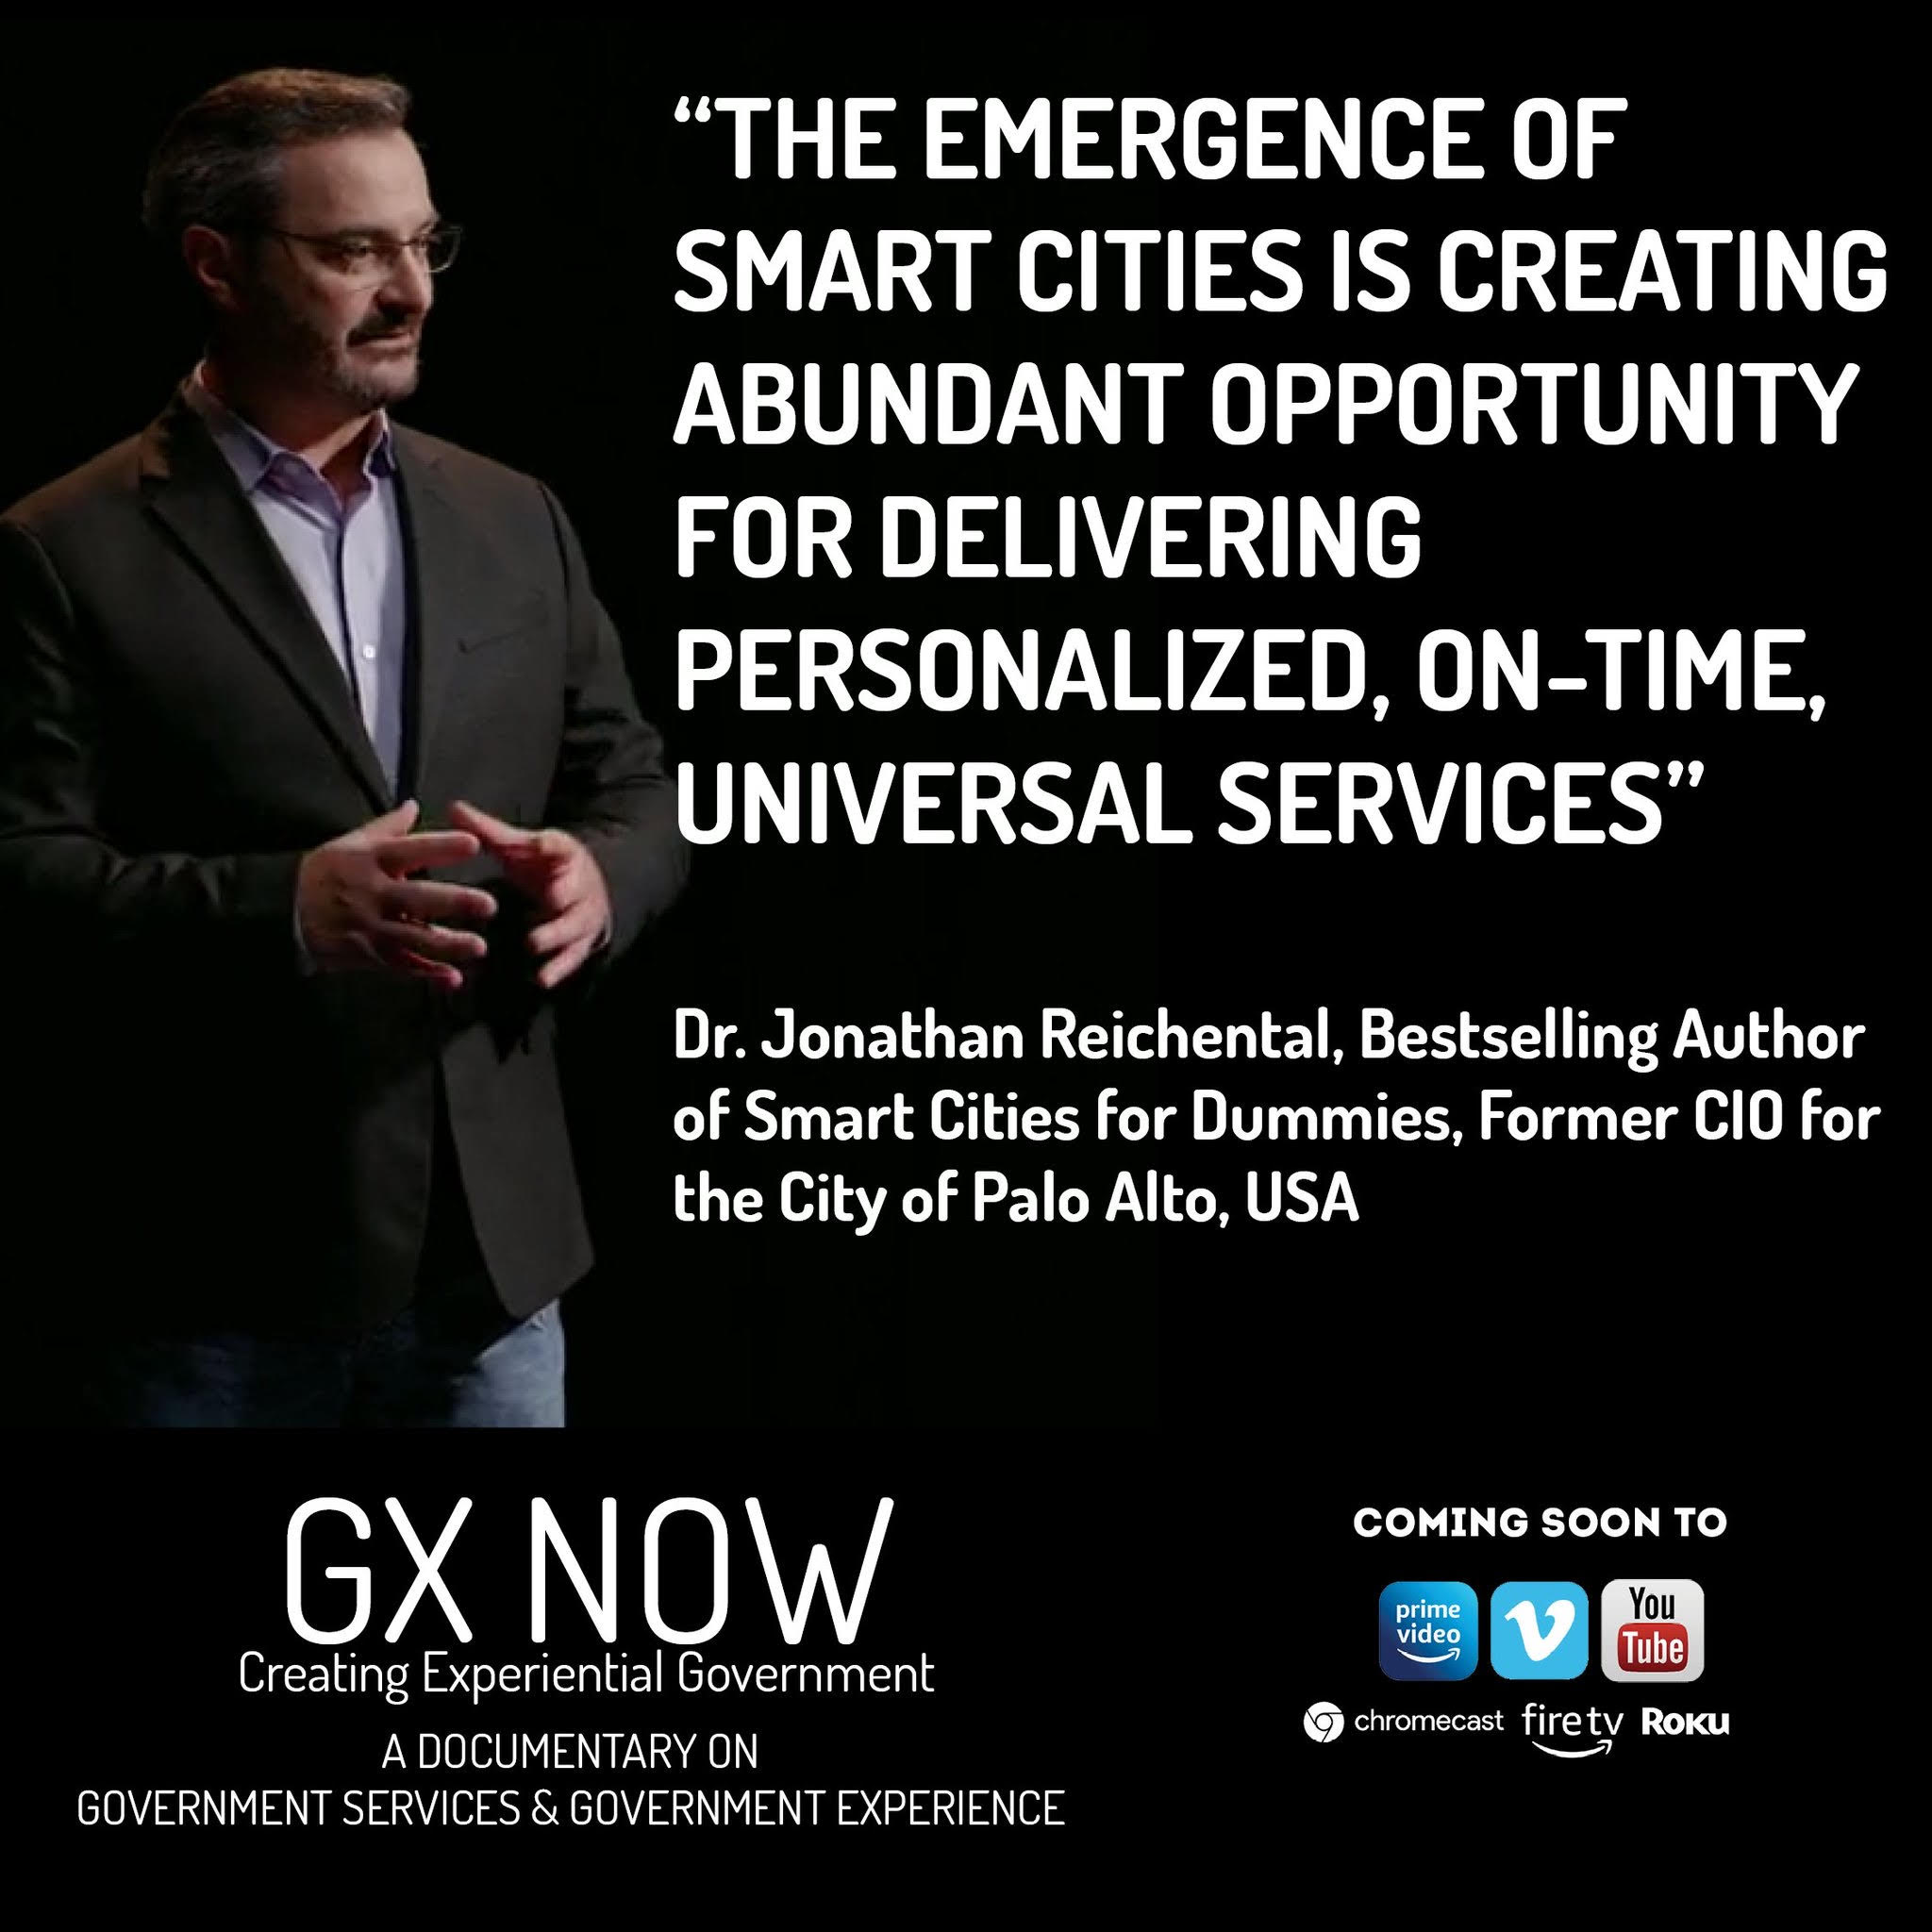 GX Now, an Amazon Prime Documentary Featuring Dr. Jonathan Reichental